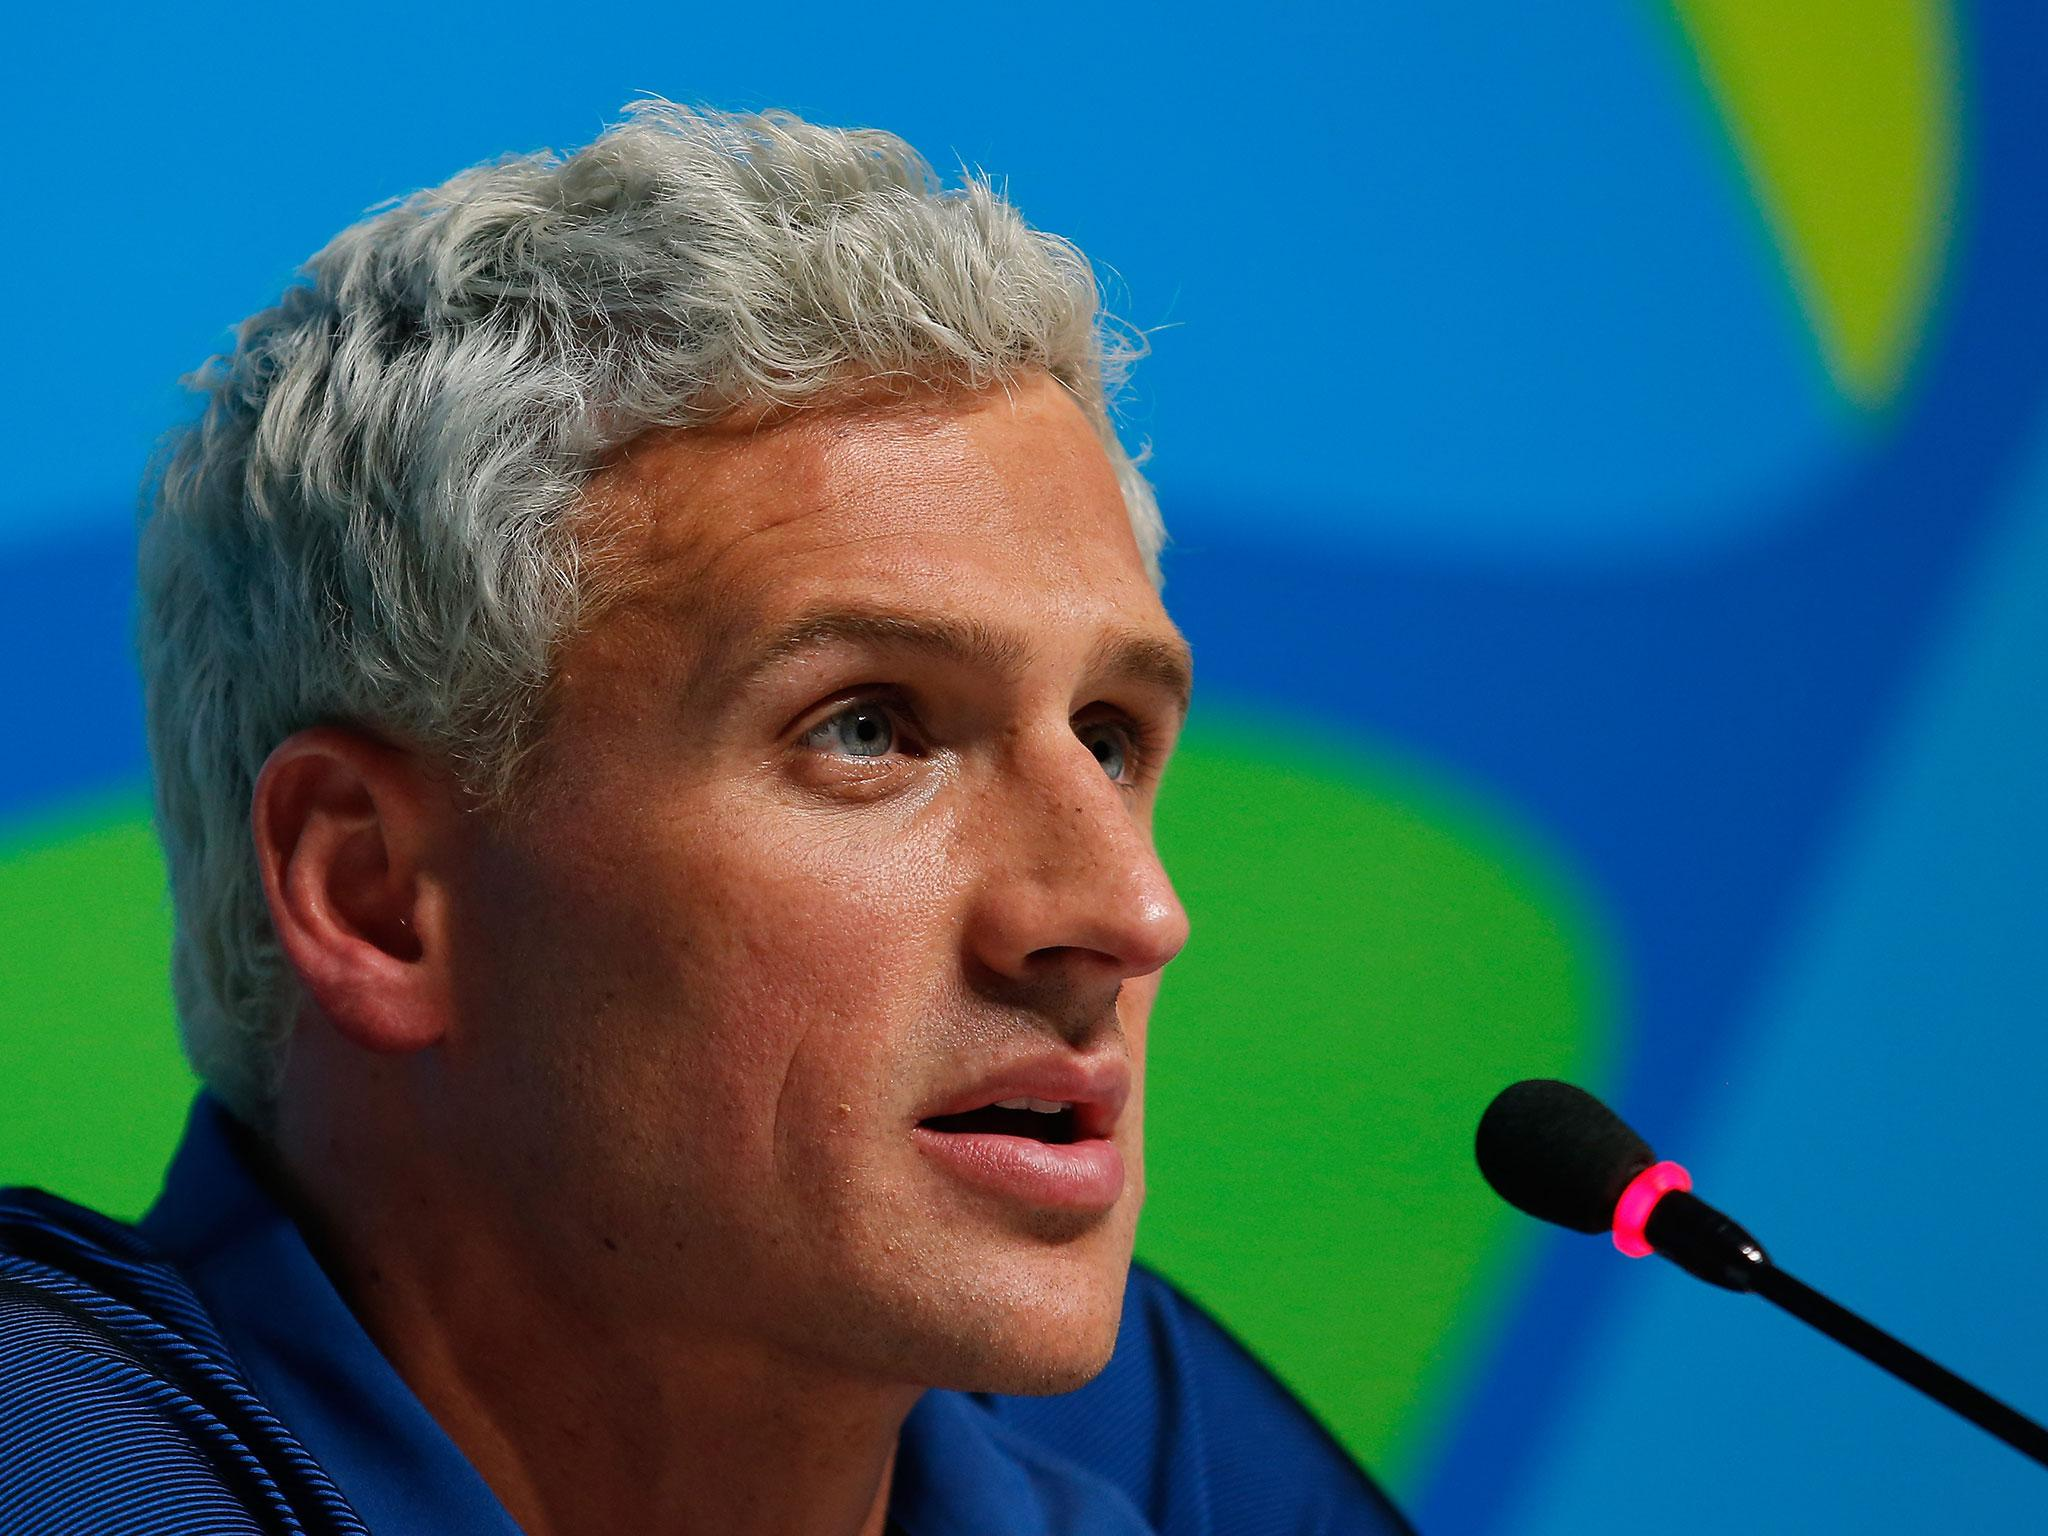 Ryan Lochte dropped by Speedo after Rio 2016 'robbery' incident